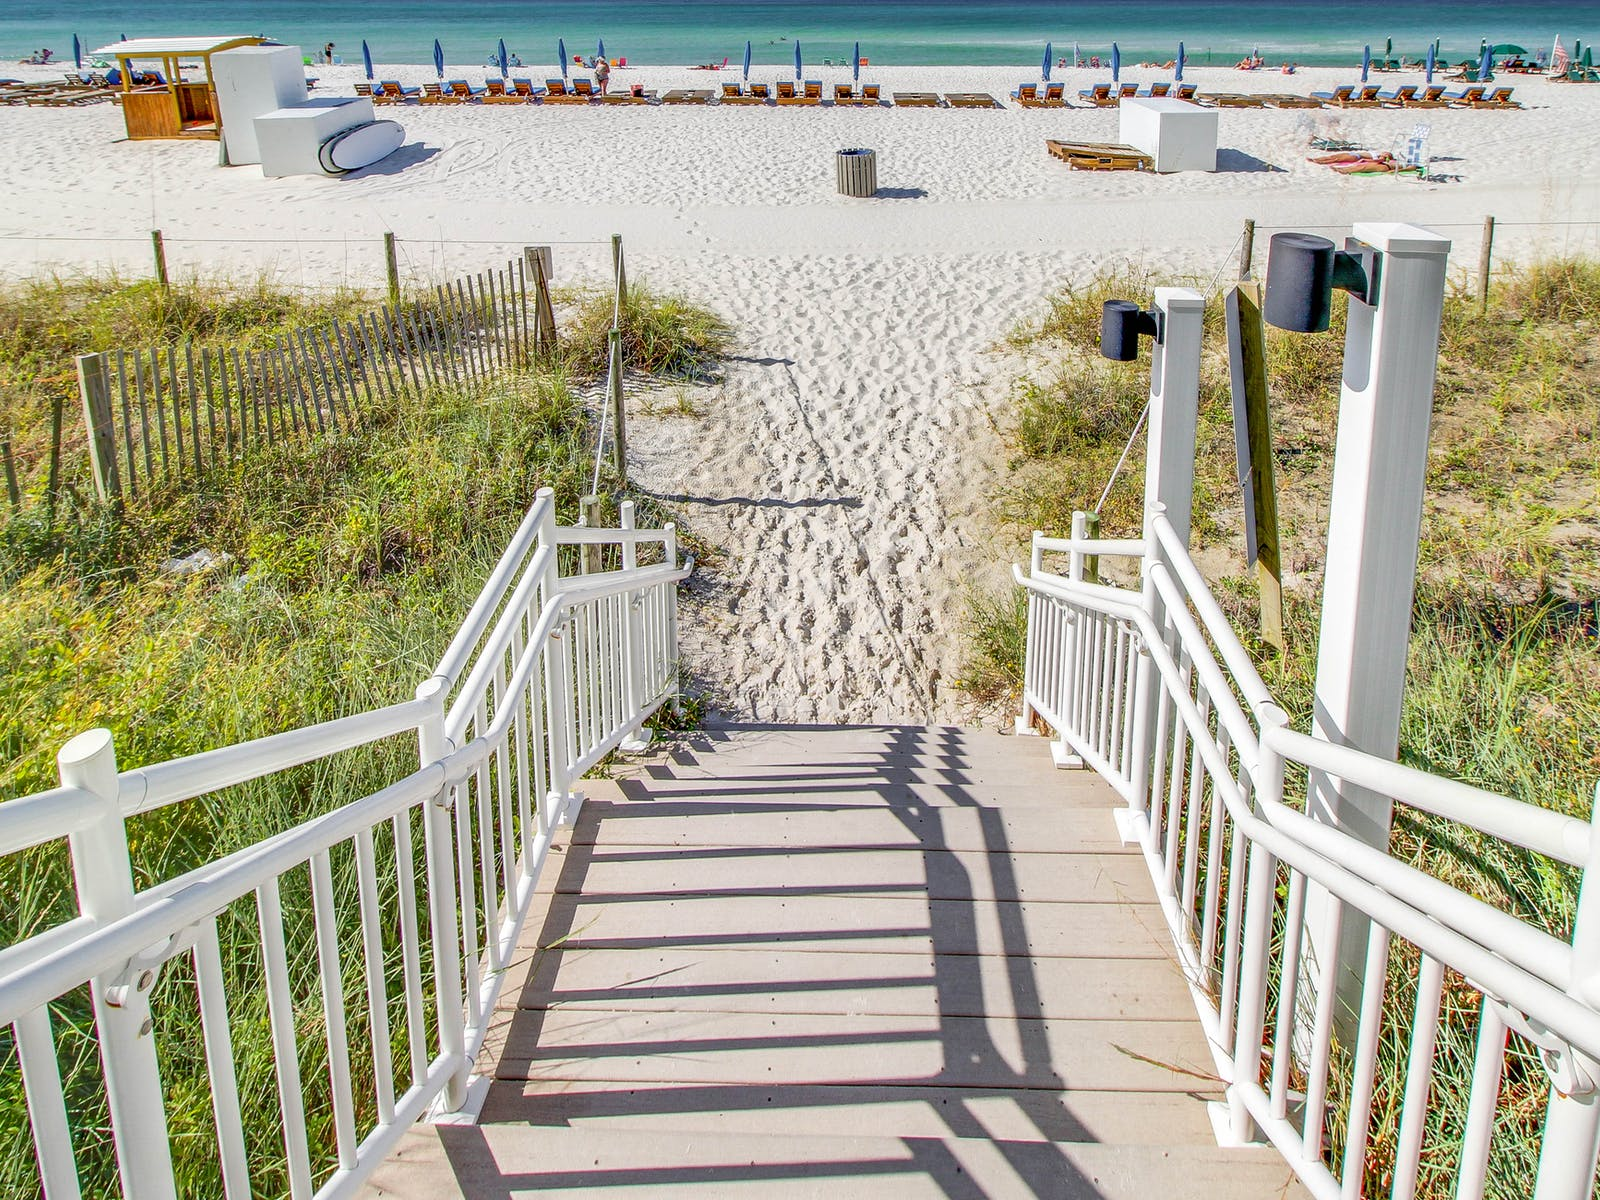 Walkway down to beach in Panama City Beach, FL